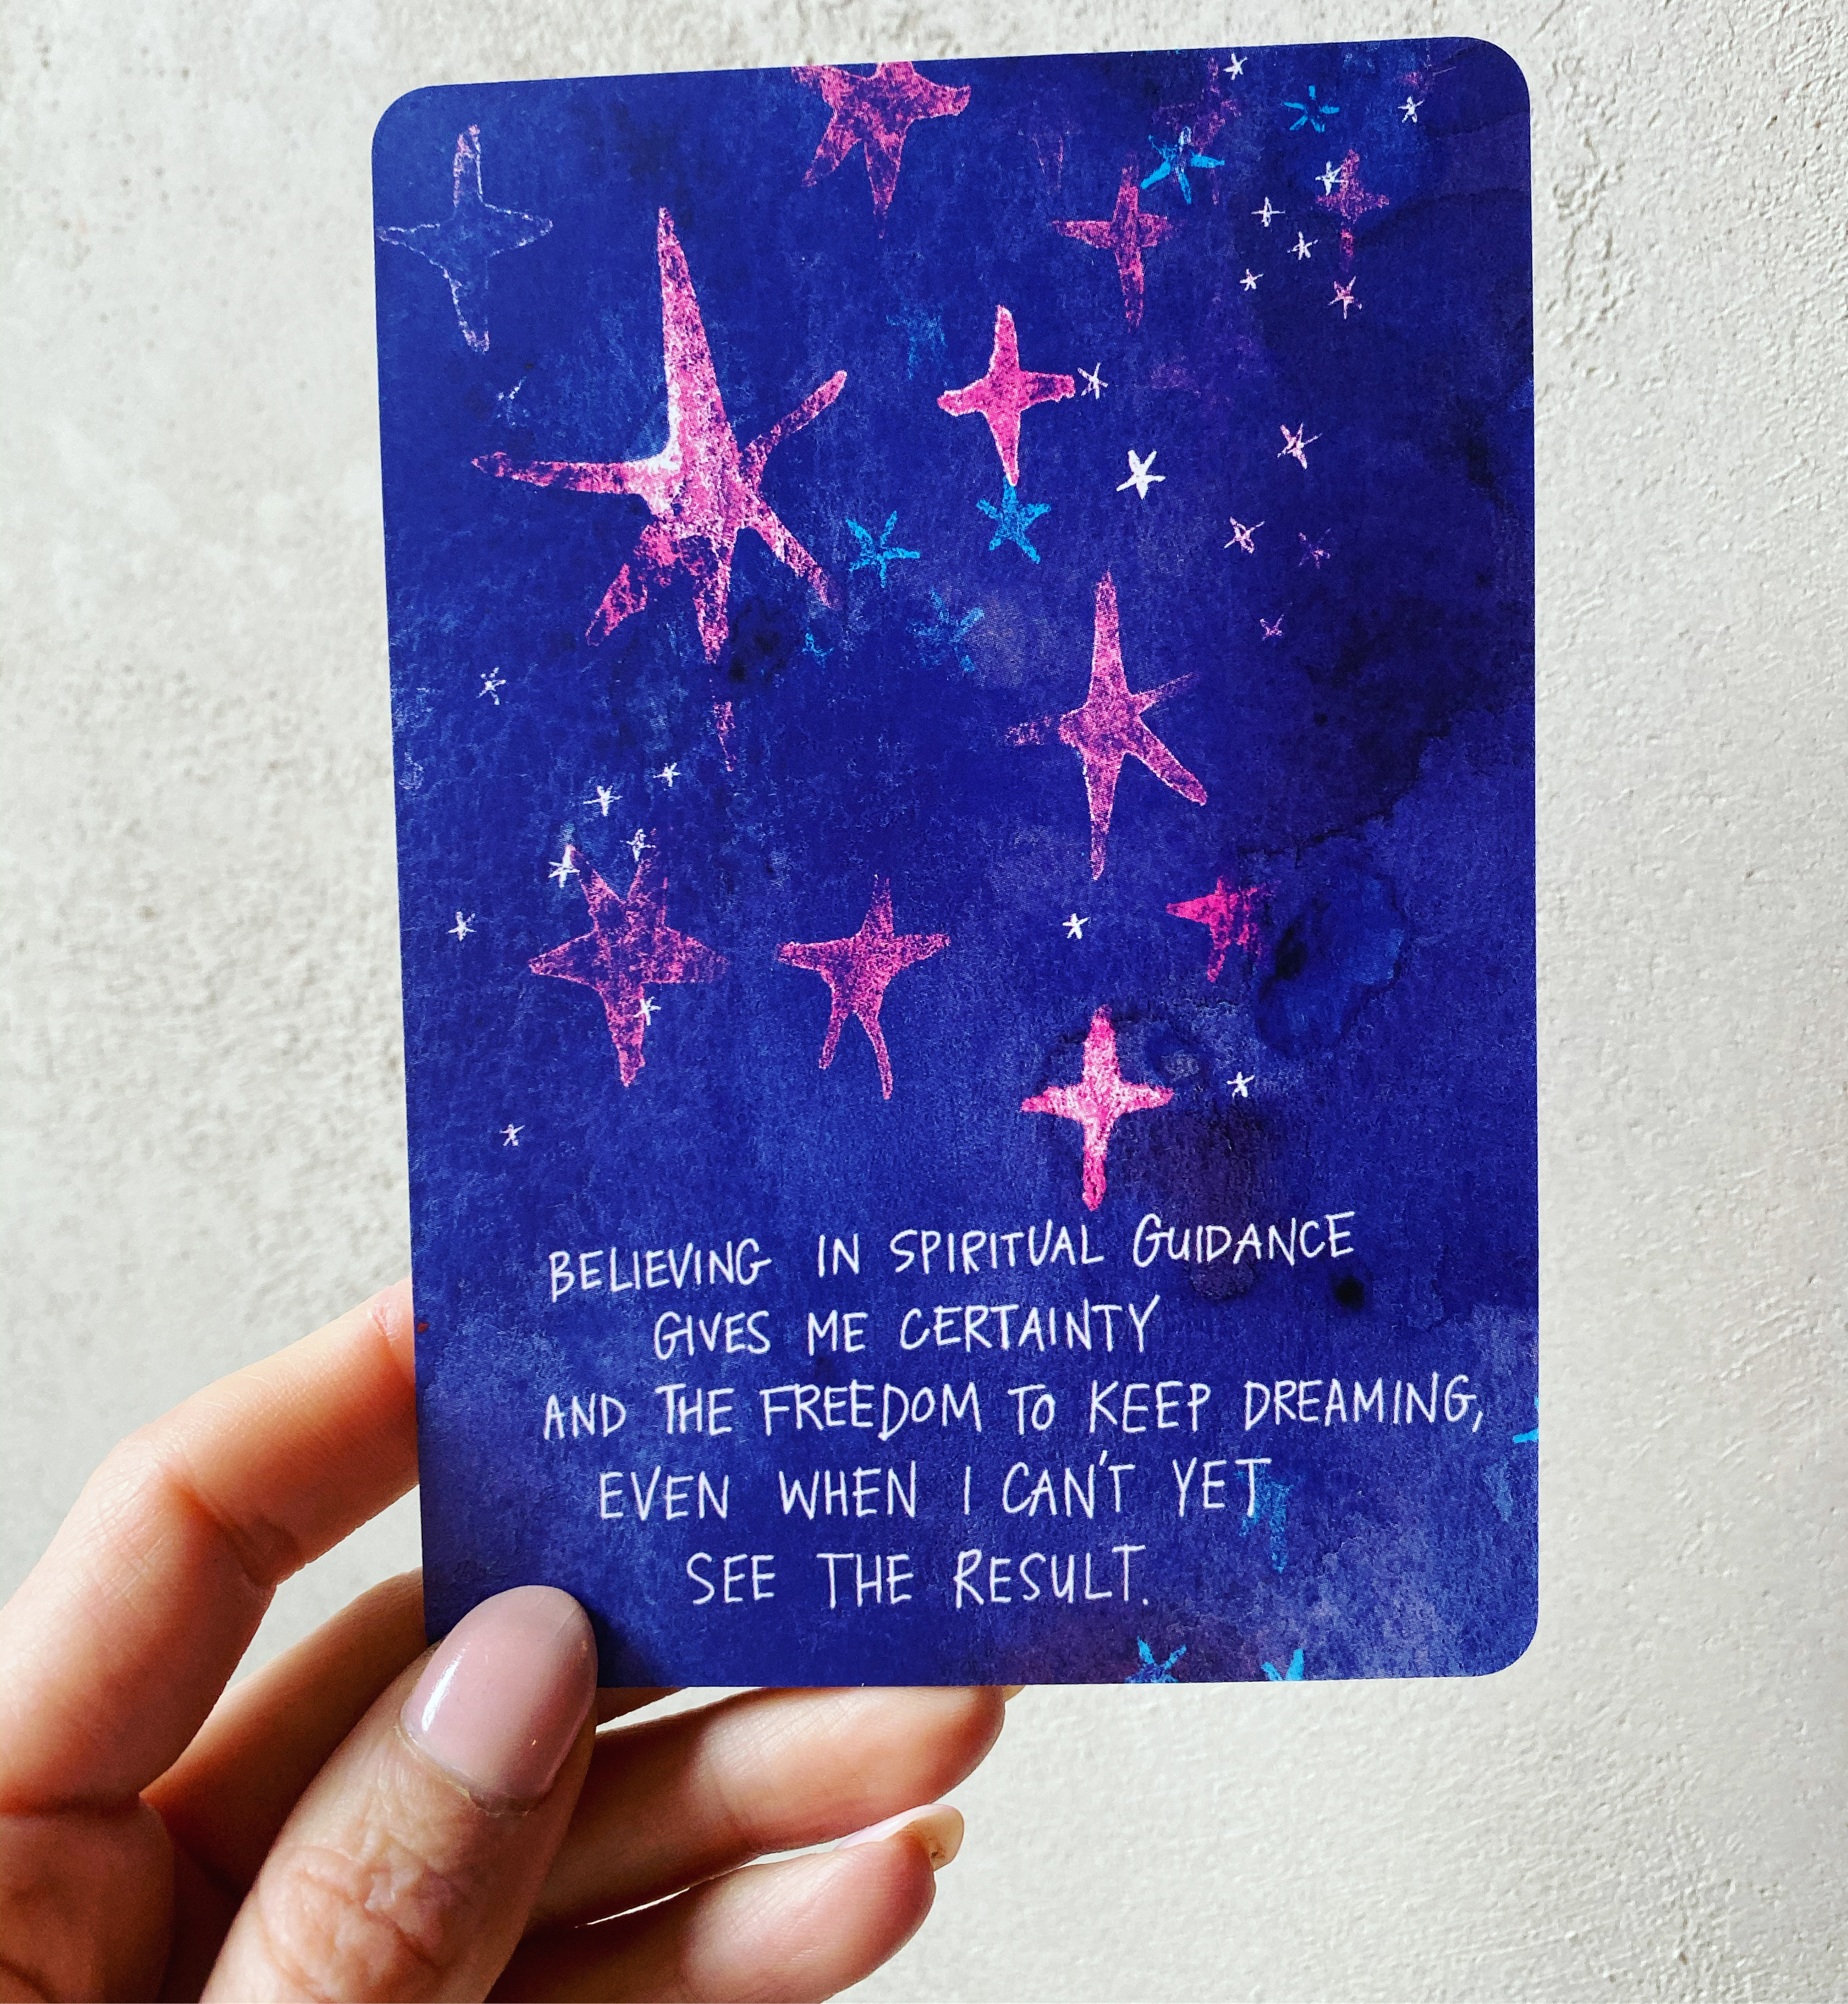 Believing in spiritual guidance gives me certainty and the freedom to keep dreaming, even when I can't yet see the result | Super Attractor card deck | Gabby Bernstein